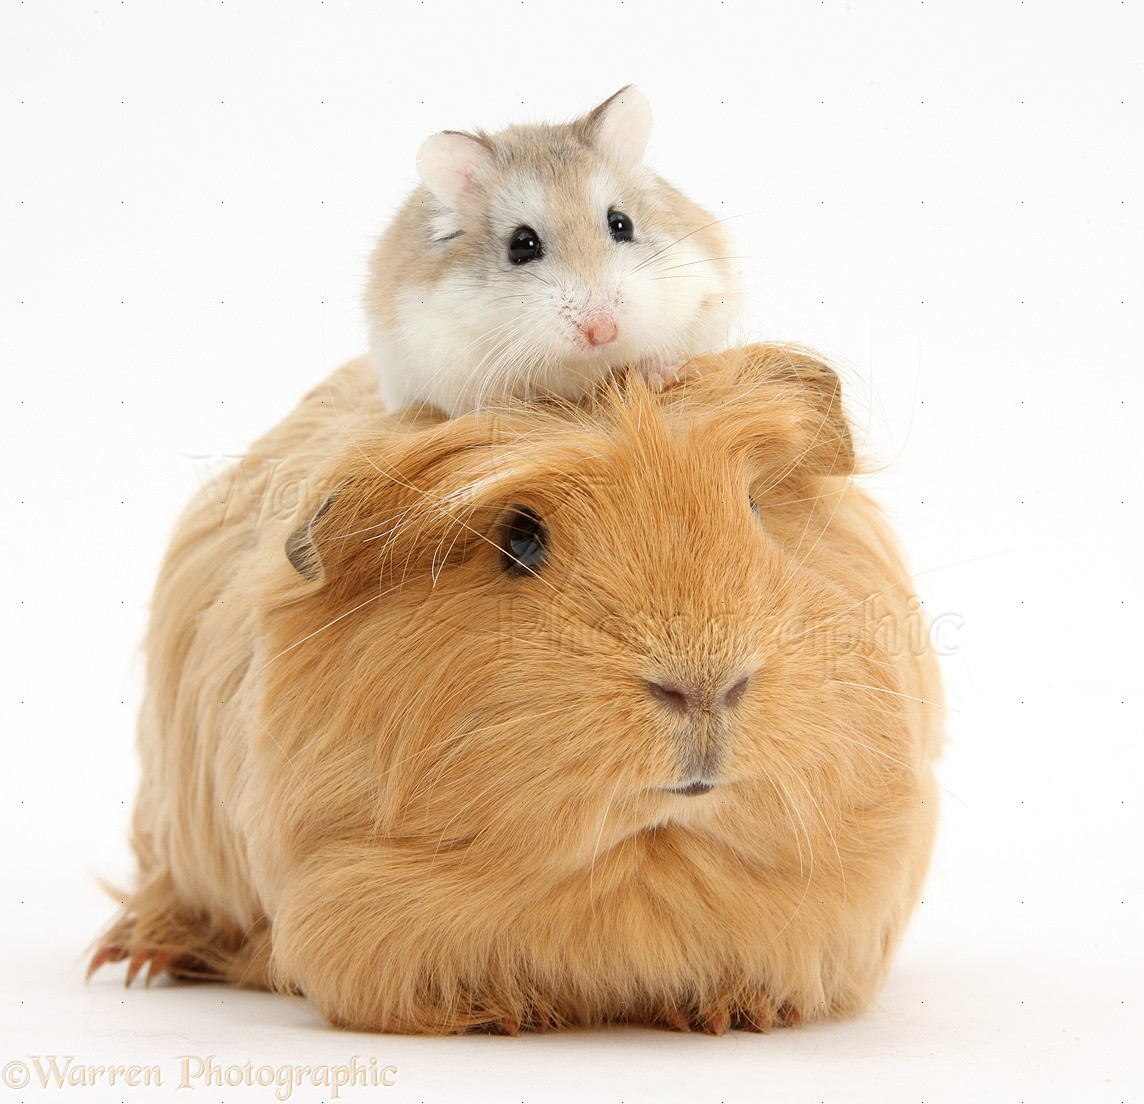 Uncategorized Hamsters And Guinea Pigs ginger guinea pig and roborovski hamster photo wp39652 puppy red pig